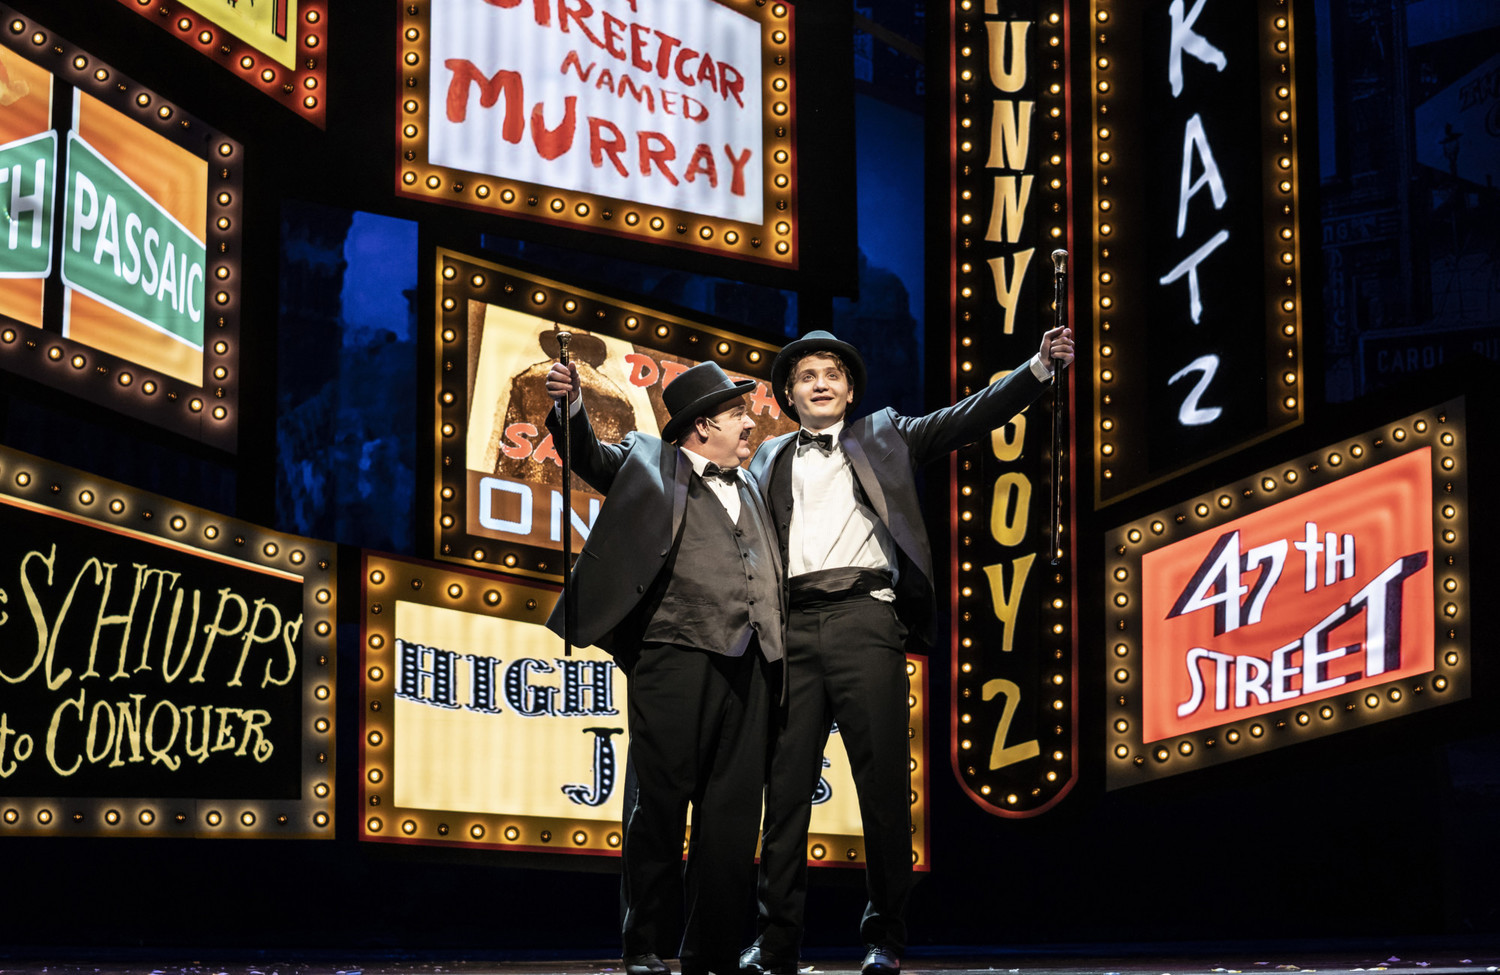 BWW Review: THE PRODUCERS at Paramount Theatre